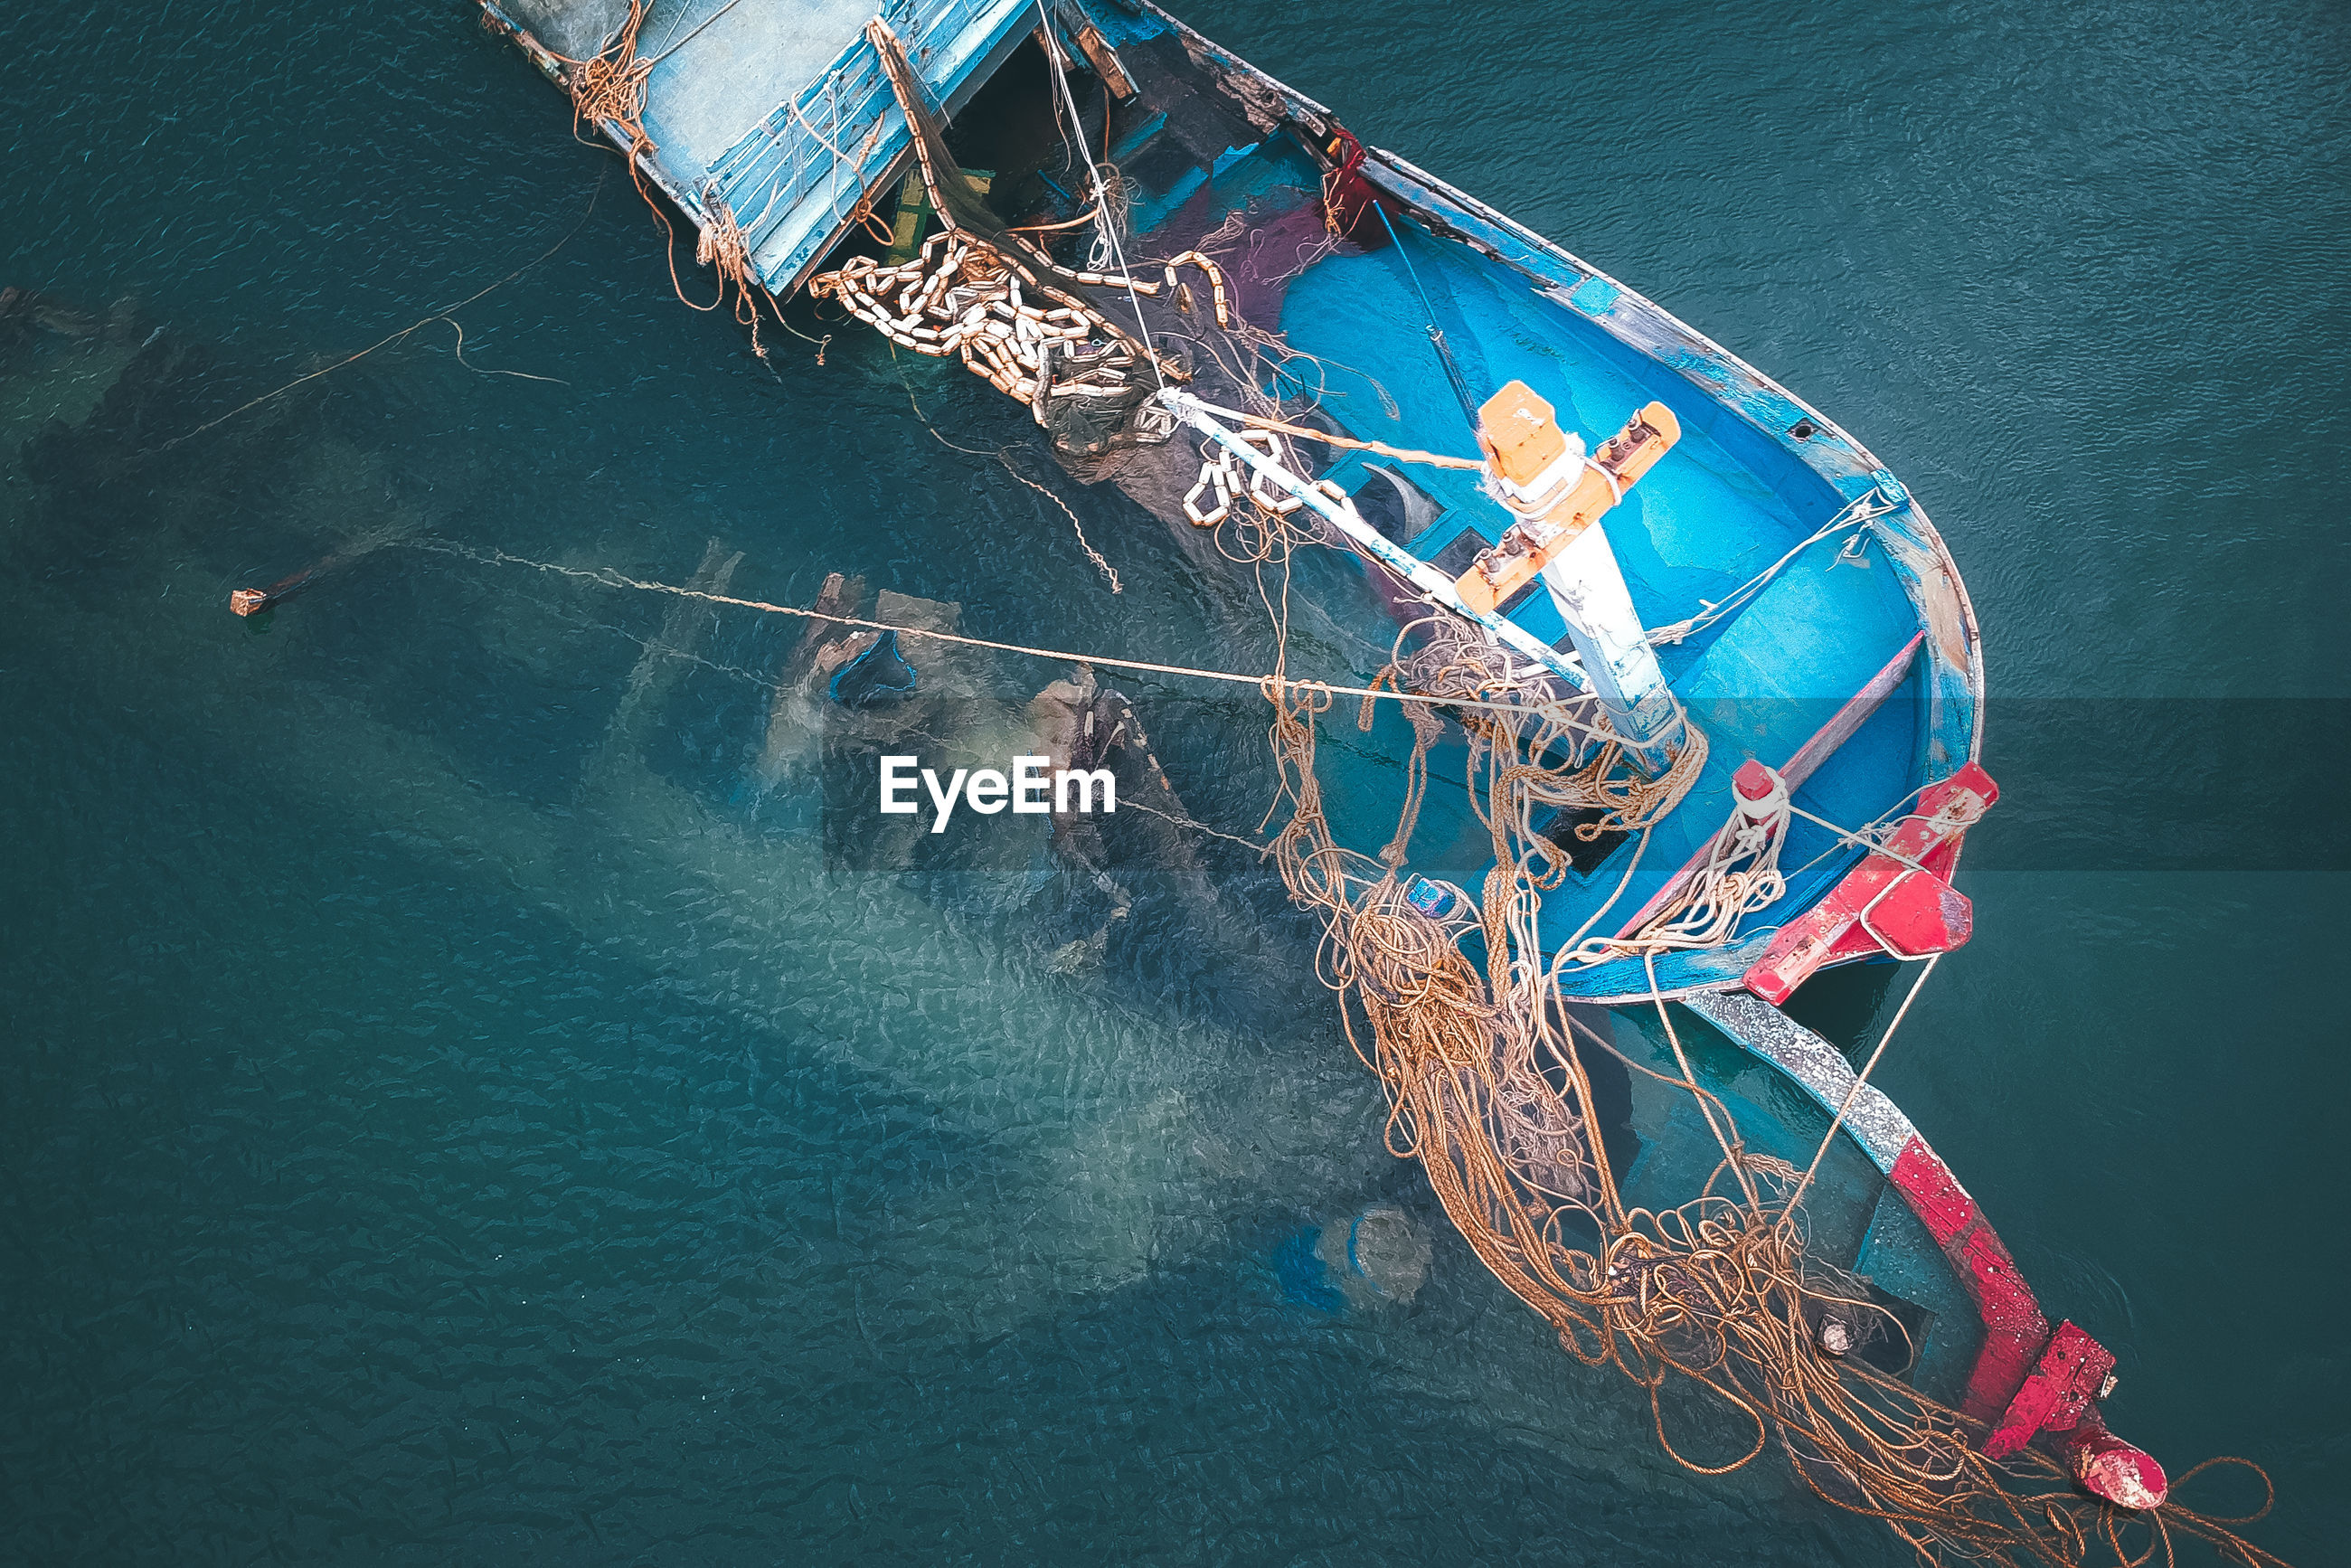 HIGH ANGLE VIEW OF FISHING BOAT MOORED AT SEA